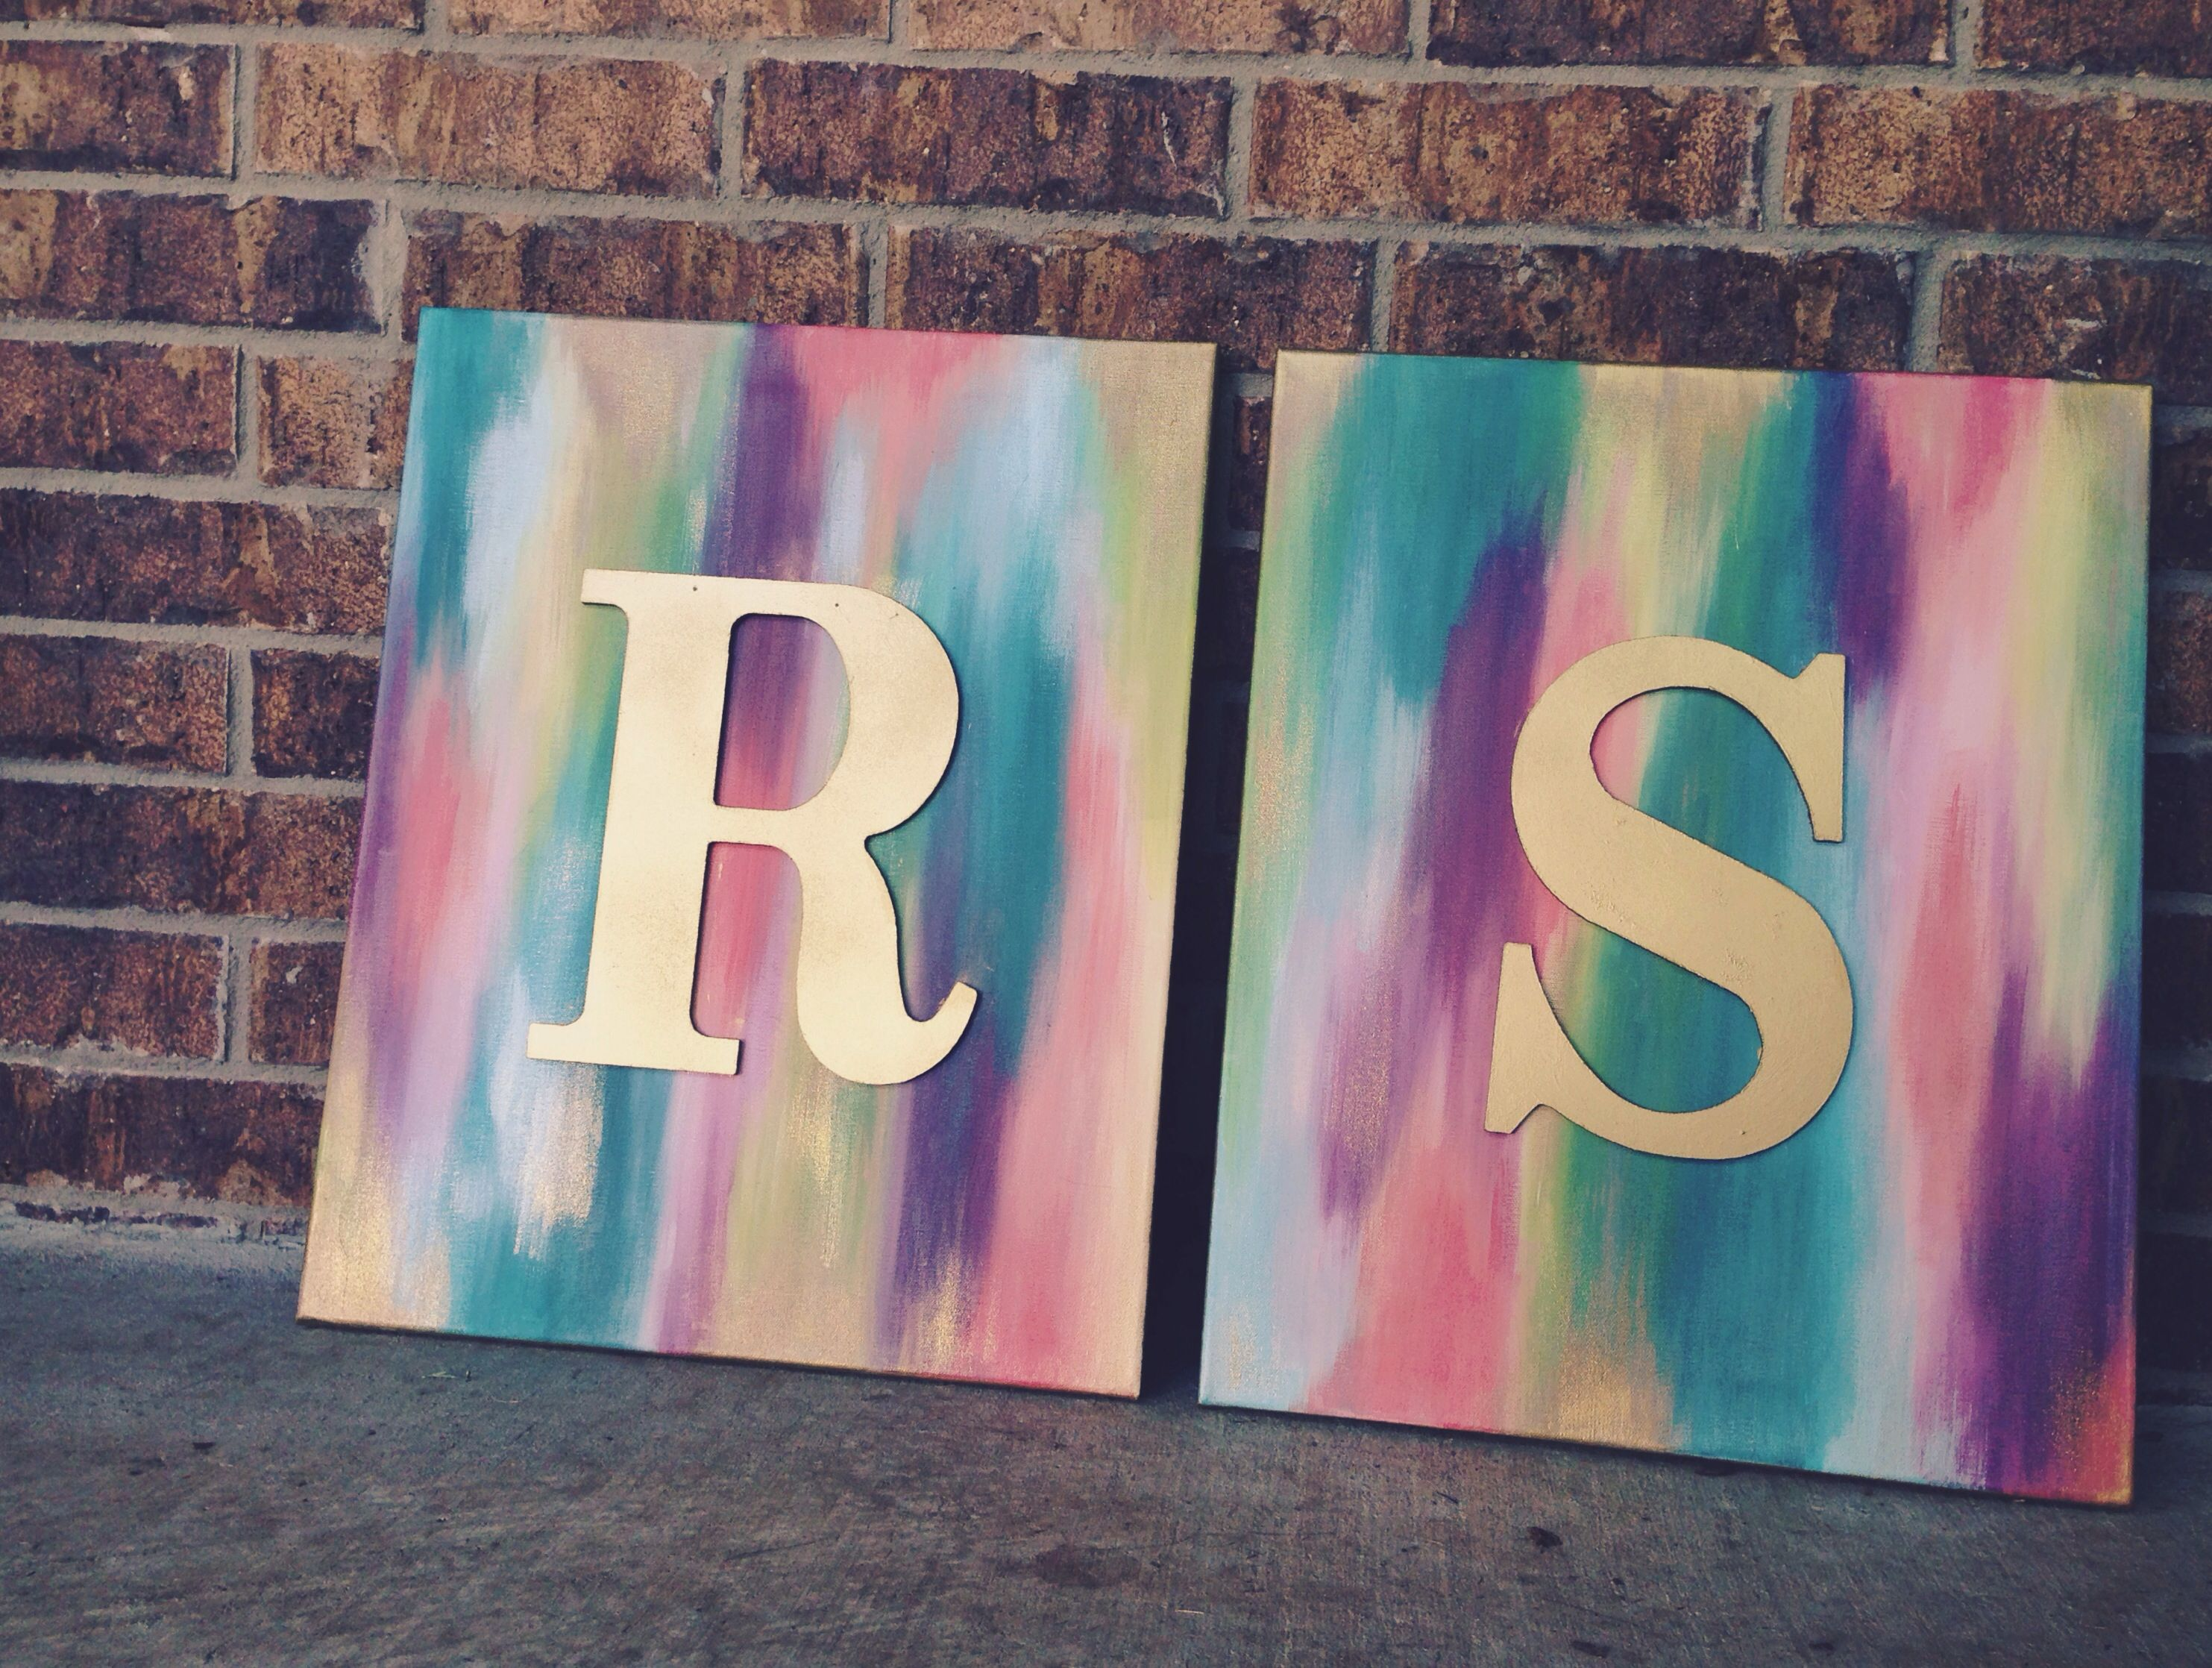 Gold Spray Painted Wooden Letters On Abstract Canvases